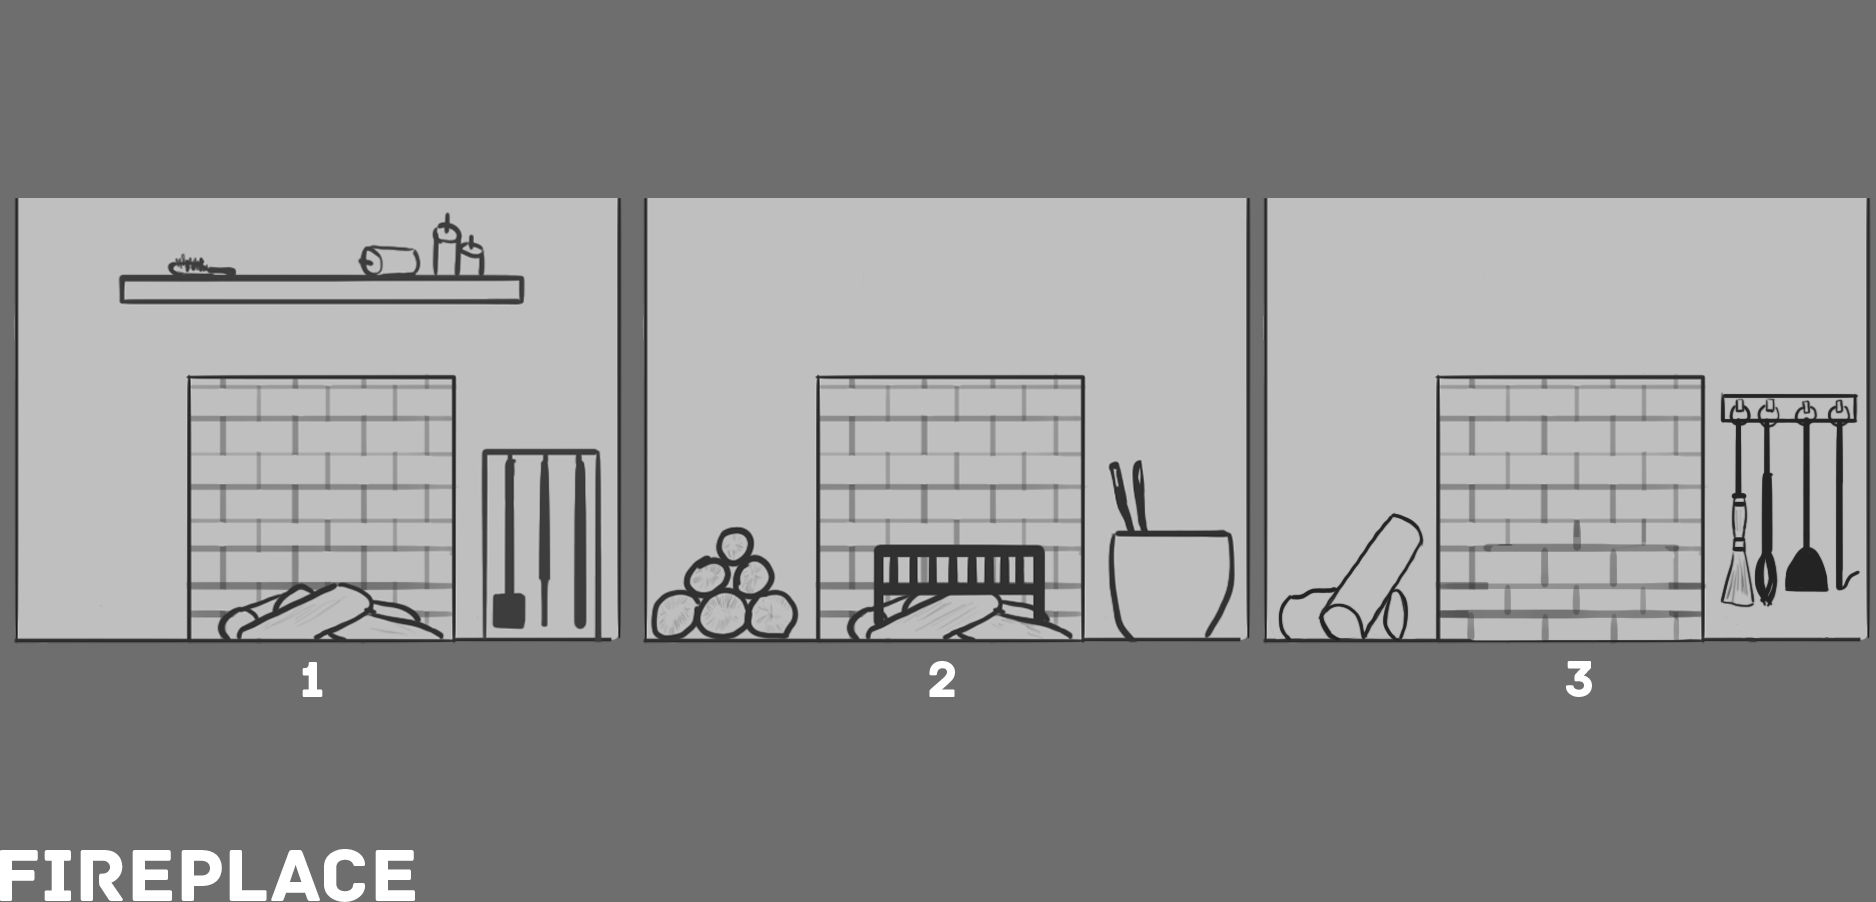 11a RD5 Fireplace Sketches V1